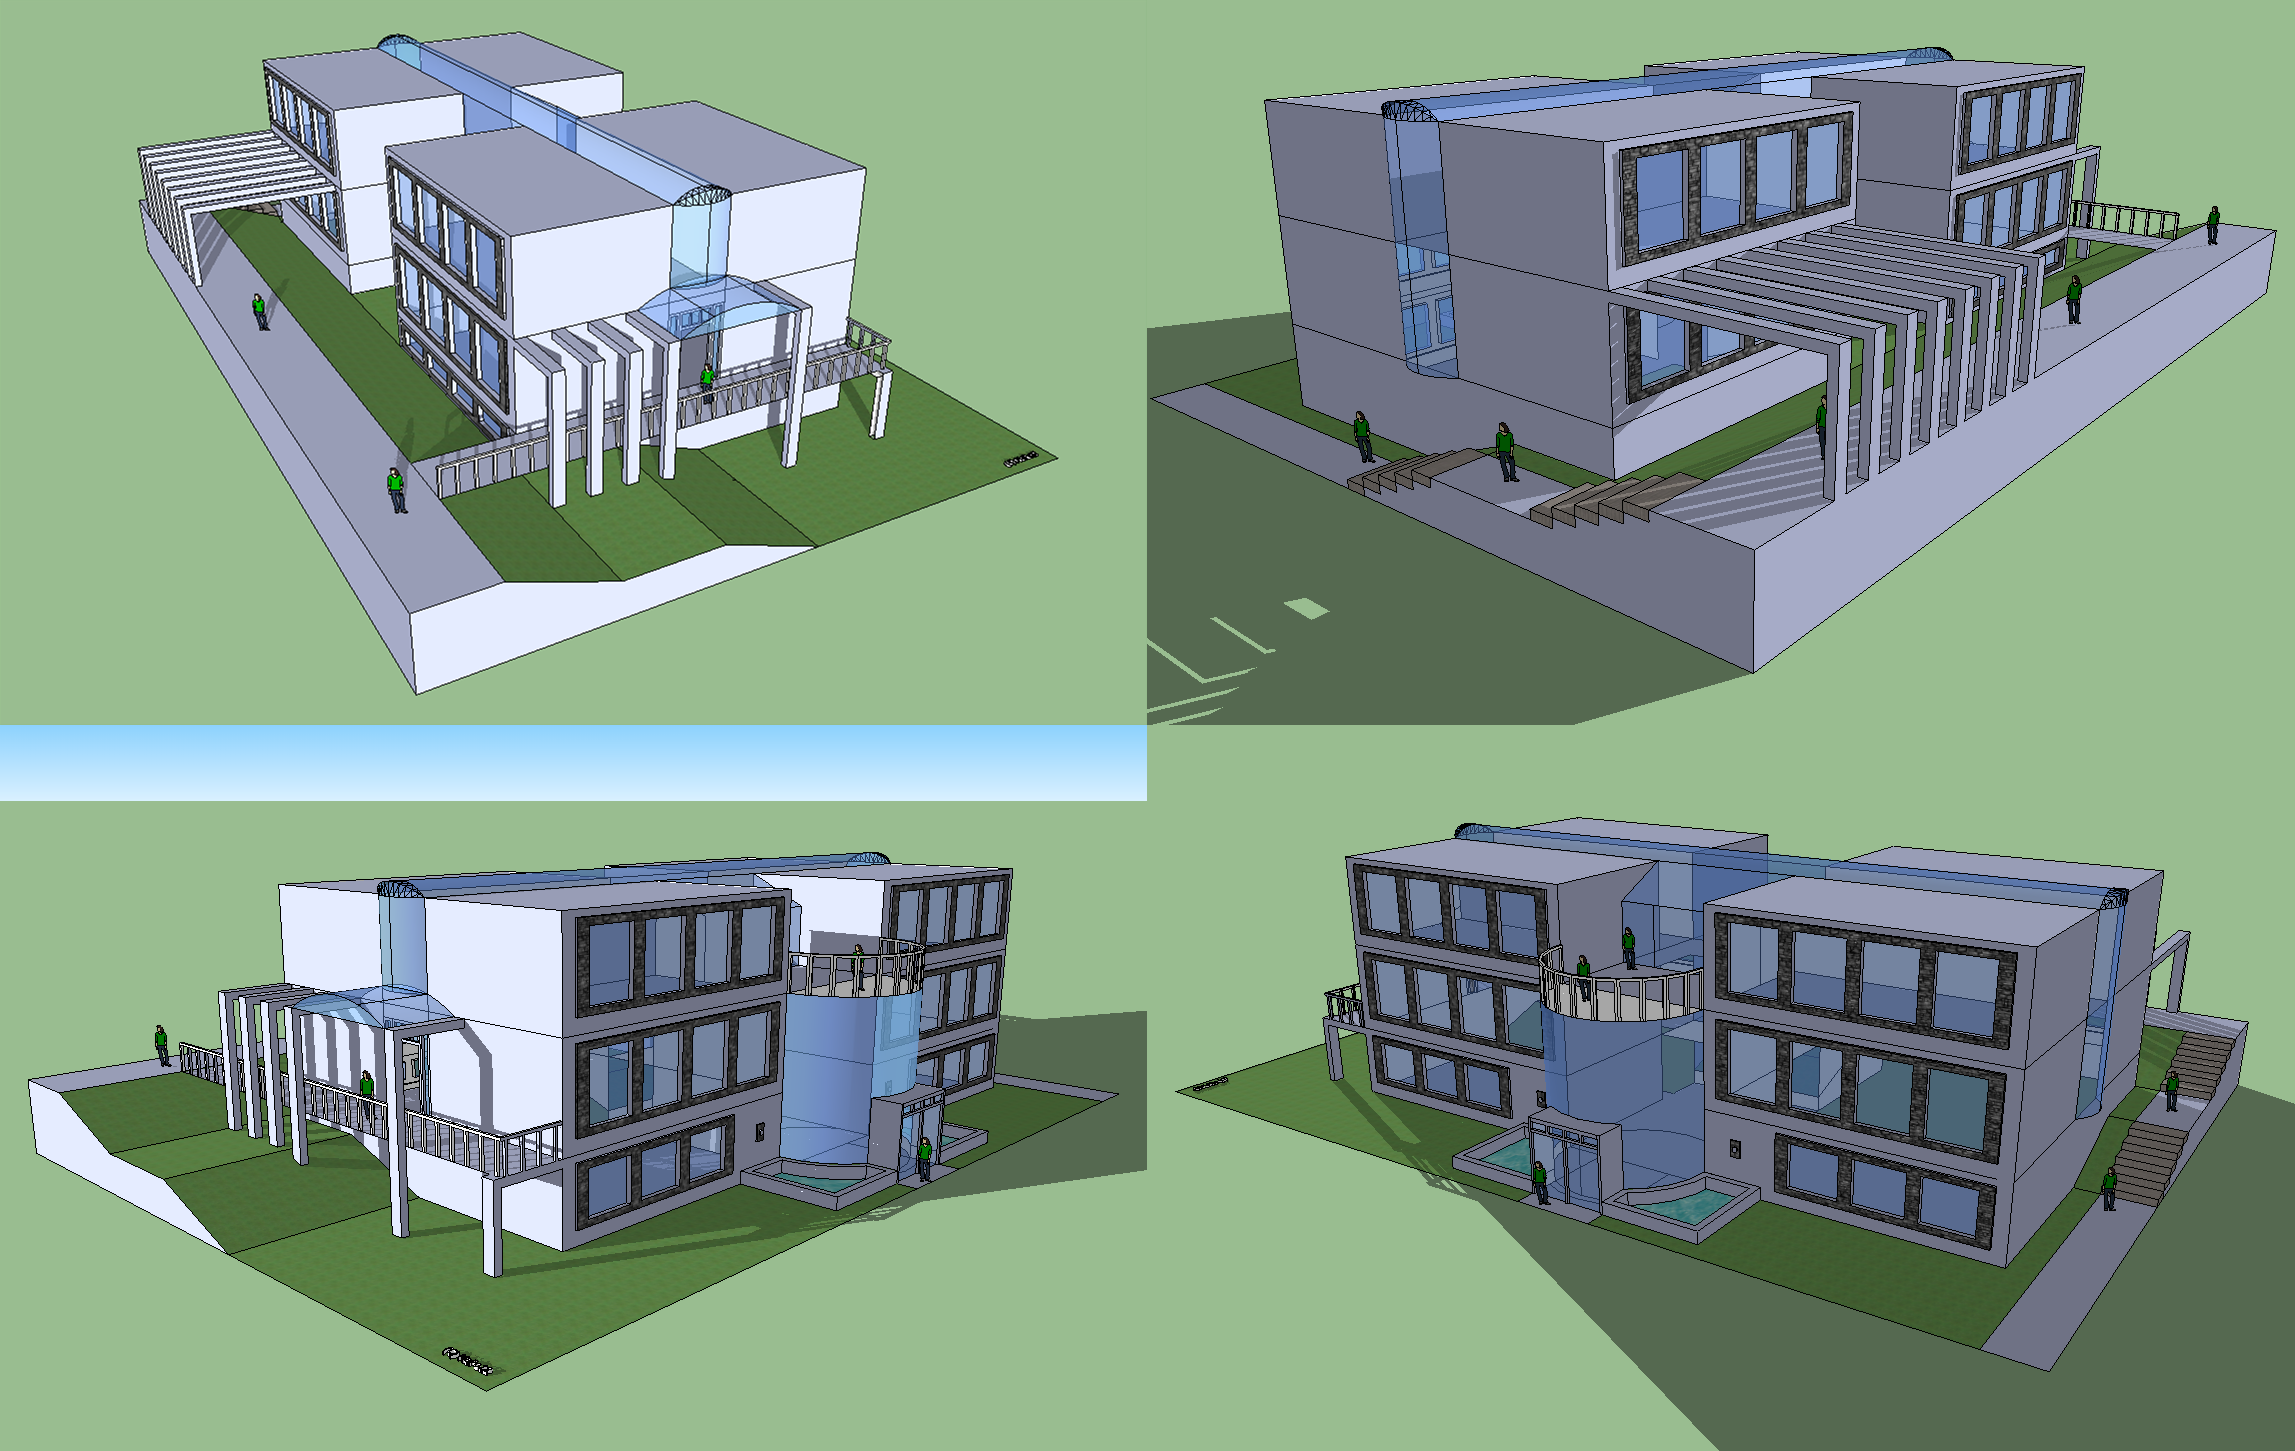 School building by mapo12 on deviantart for School building design